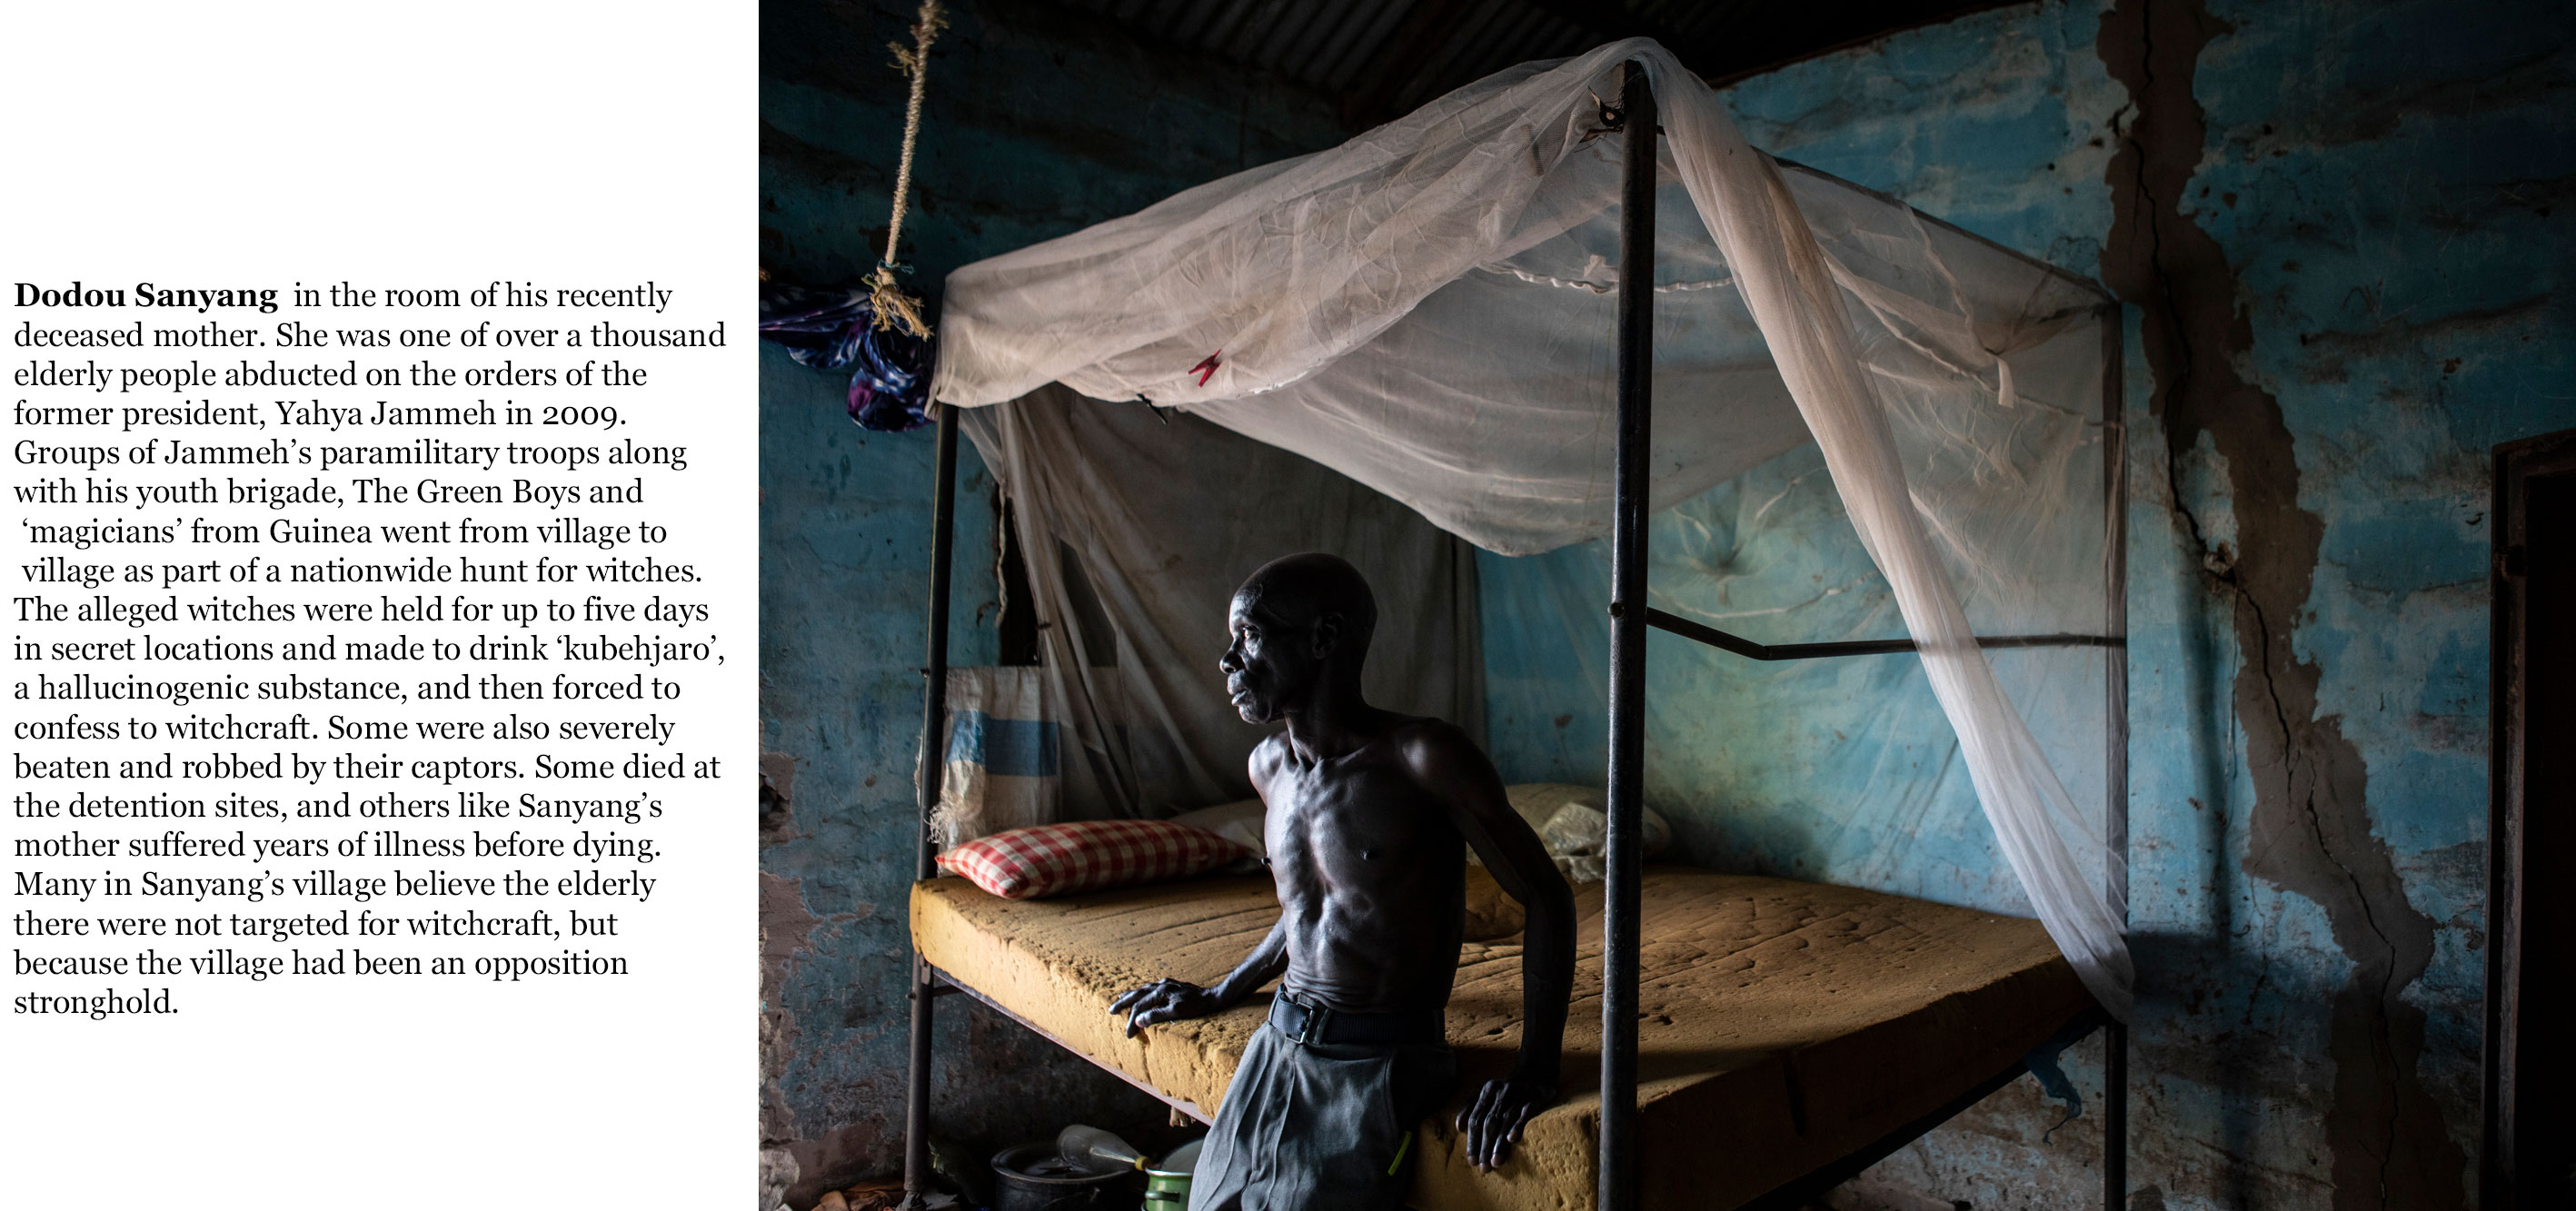 The Gambia victims and resisters -Dodou-Sanyang, witch hunts ©Jason Florio